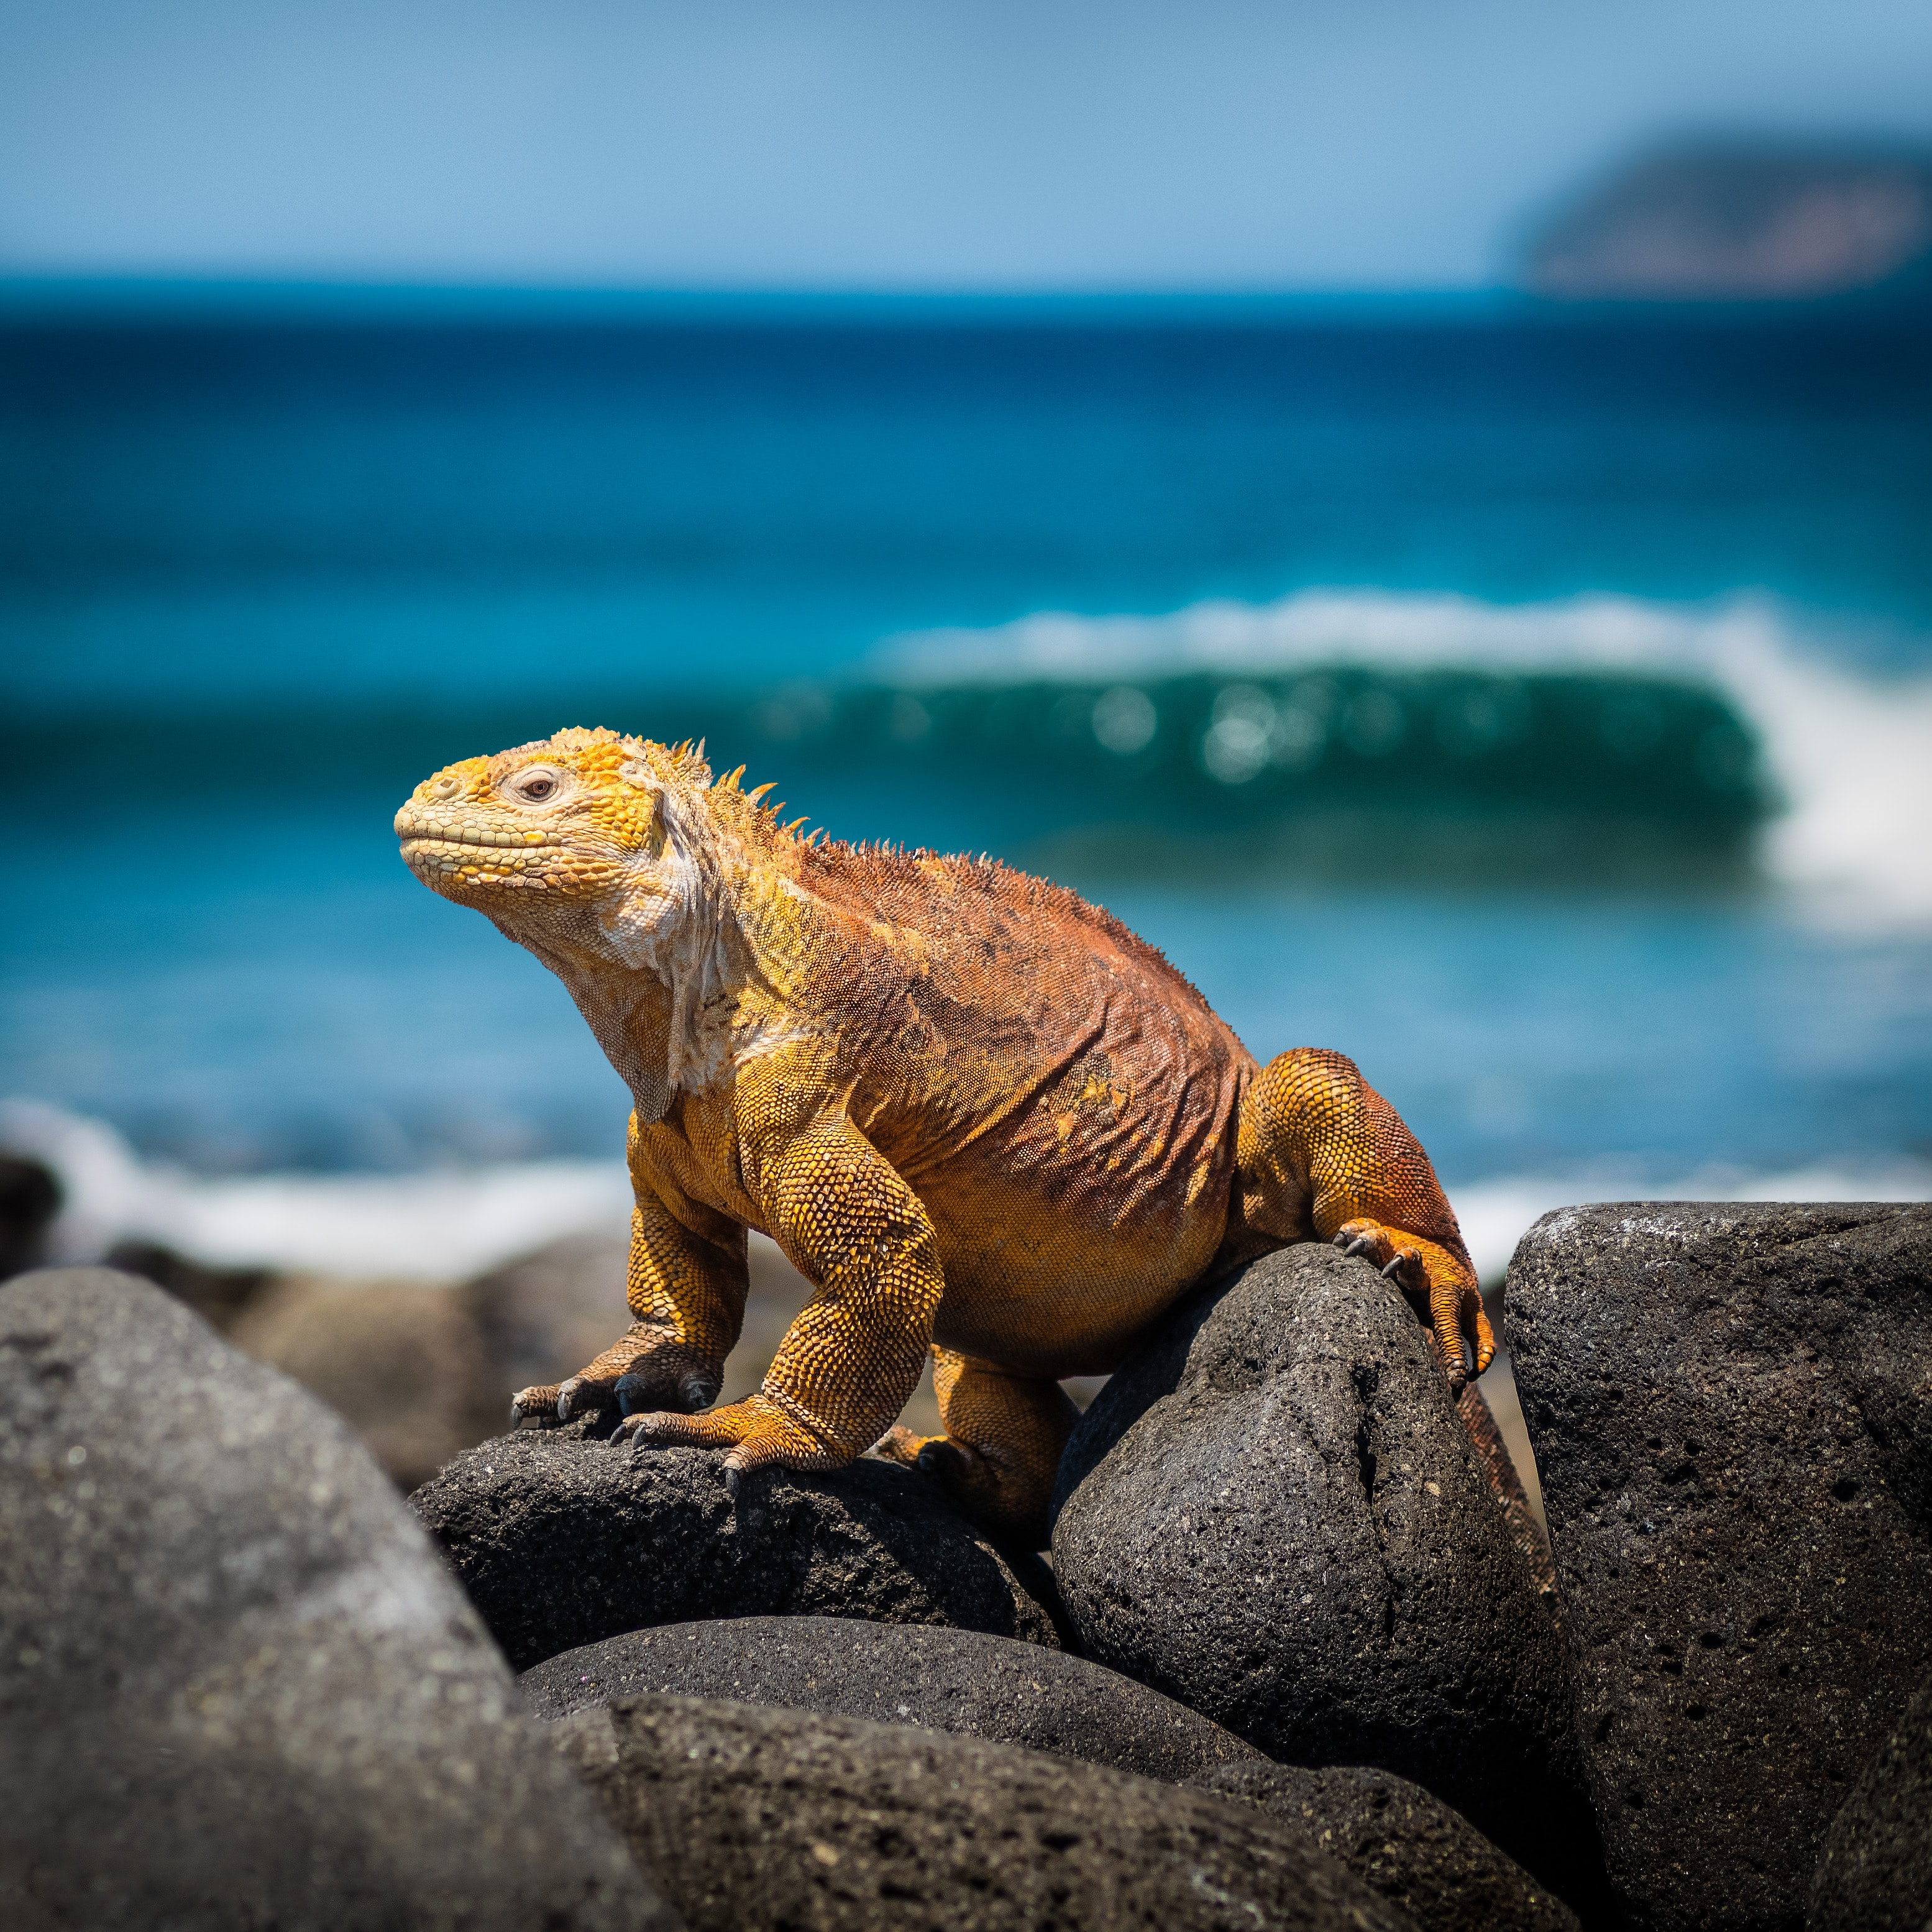 A large orange lizard balances between two rocks by the Provinz Galapagos in Ecuador, overlooking the sea